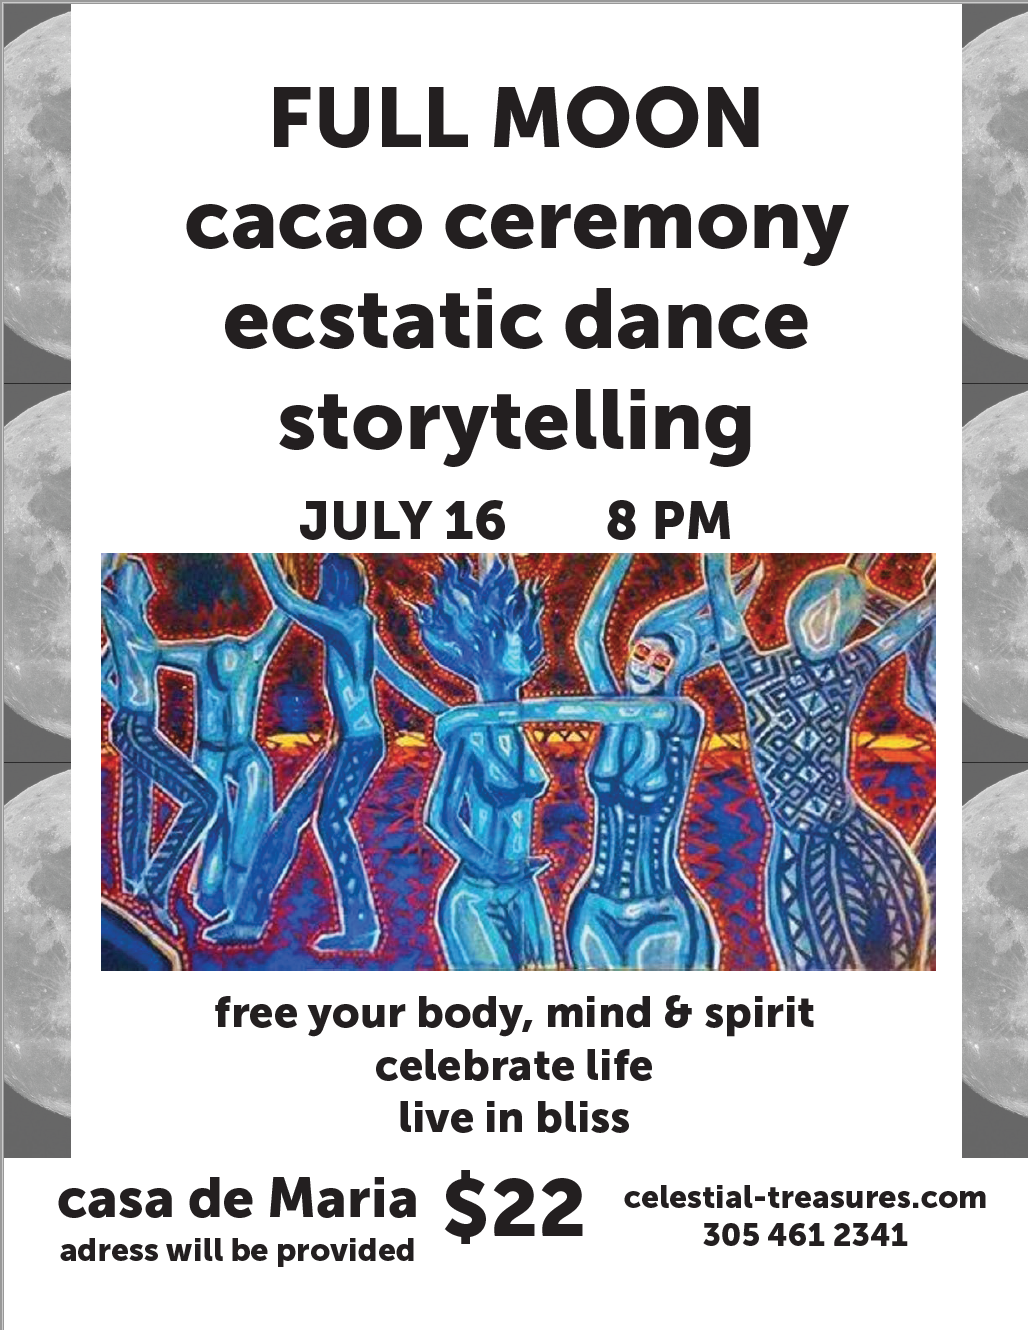 Join us for a magical celebration of the July full moon with ecstatic dance, storytelling, and the magic of ceremonial cacao.  Cacao has been used for centuries by the Mayans as a way of connecting to the divine. This sacred plant, when used in ceremonial context, has been known to have powerful heart opening effects, such as enabling deep connection and love with others; bringing deep feelings of contentment, gratitude, and bliss; and strengthening one's personal connection to themselves and the divine.    Ecstatic dance serves to free our spirits, calm our minds, and enable expression and communion with our inner selves. This is a safe environment to move your body any way you'd like!    We will open our celebration with an intention setting circle, so be prepared to release and manifest!   We will close our evening with a sacred storytelling circle, giving everybody the chance to share their story in their own creative way.    Teas and plant based treats will be provided!  This event will take place outdoors at Casa De Maria.  The address information will be provided with your ticket!    Remember to bring:  1. Loose fitting clothes that lets you move your body and free yourself  2. Water and a water bottle!